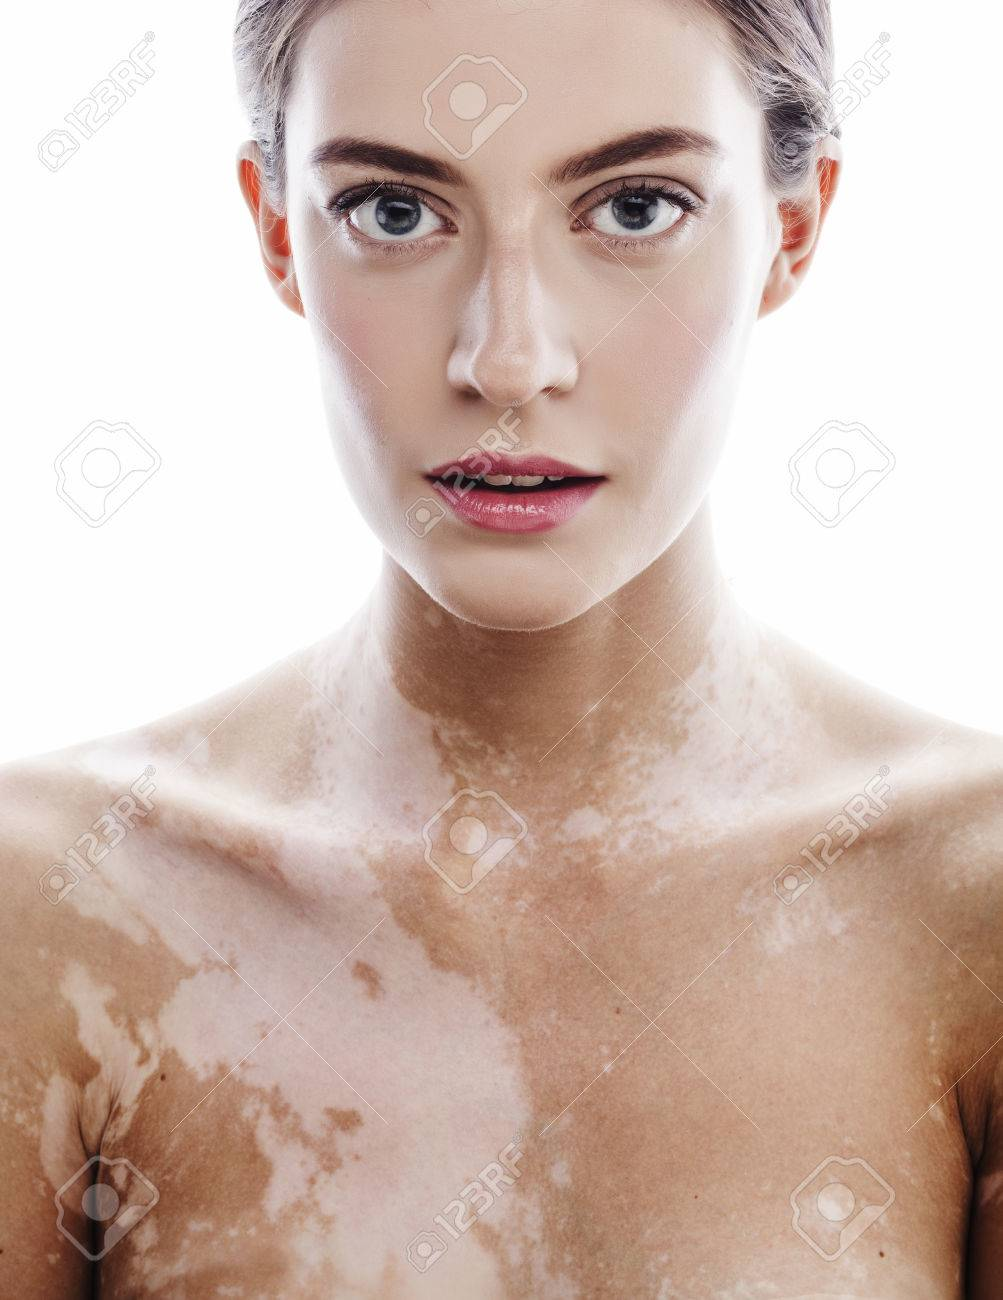 Beautiful Young Brunette Woman With Vitiligo Disease Close Up Stock Photo Picture And Royalty Free Image Image 58303666